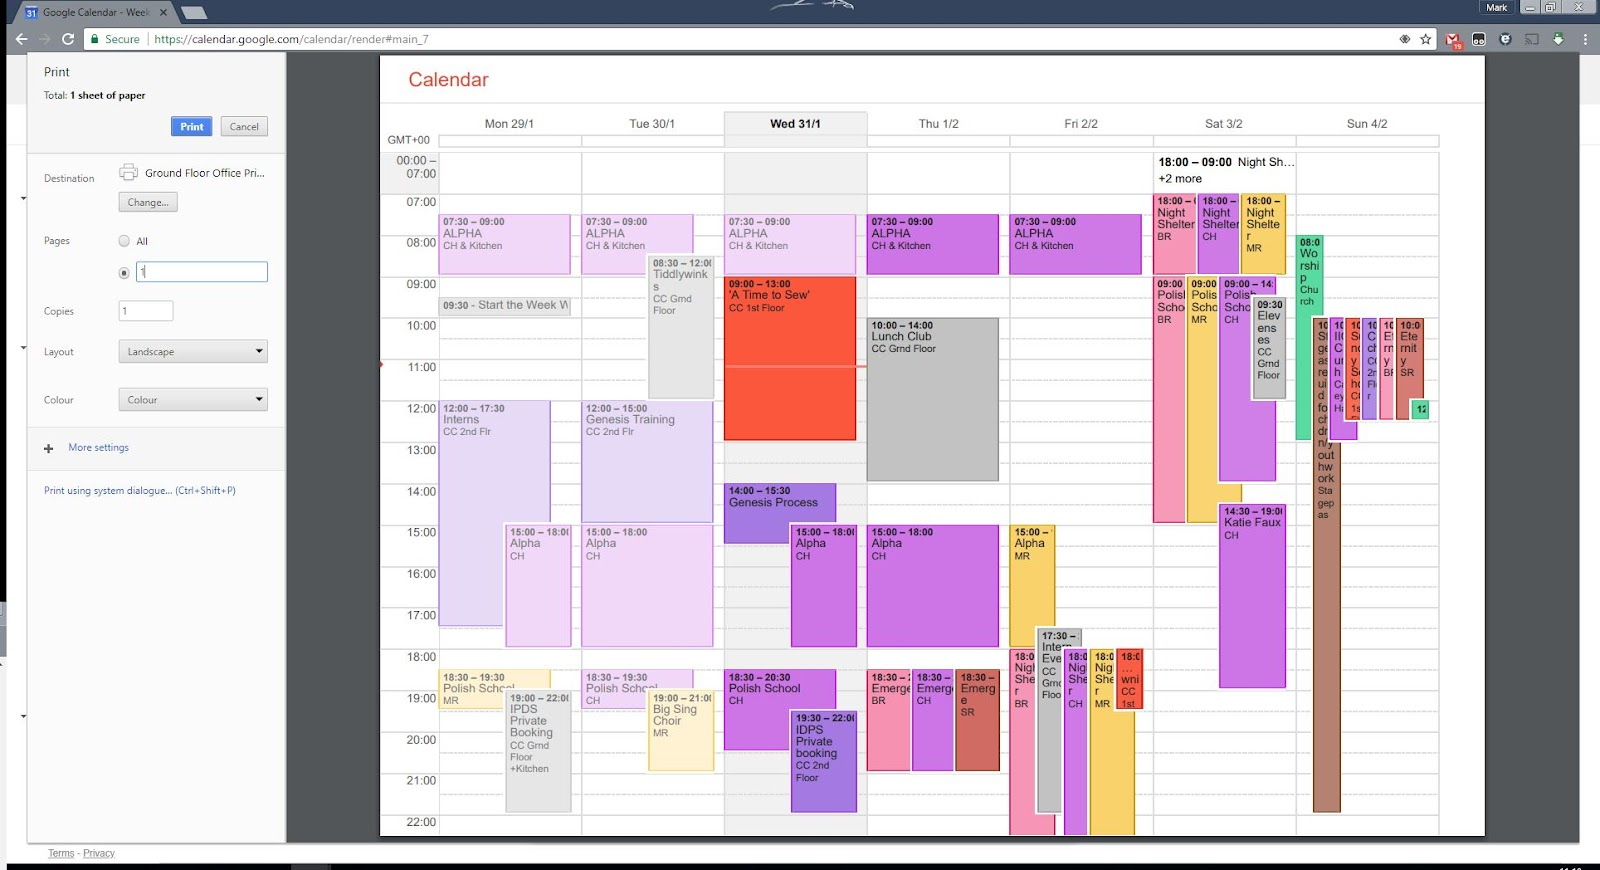 printing from calendar in chrome times wrong google product forums